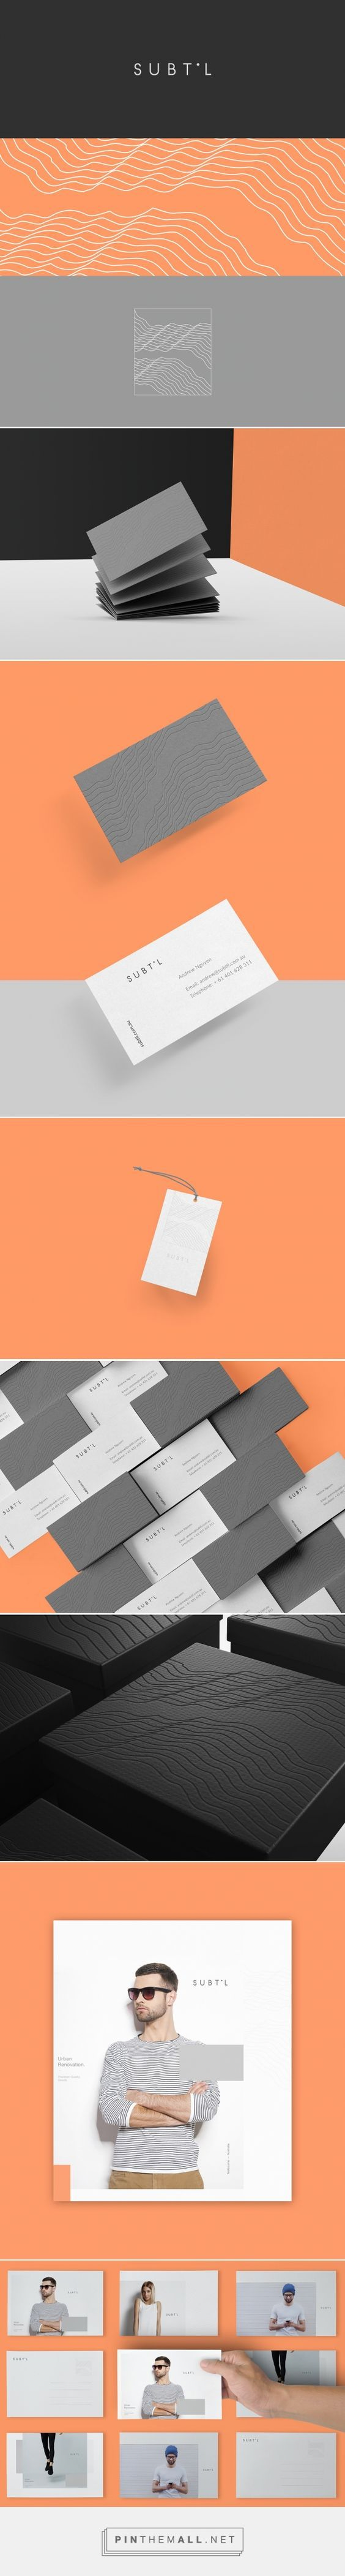 Subtil Branding on Behance | Fivestar Branding – Design and Branding Agency & Inspiration Gallery